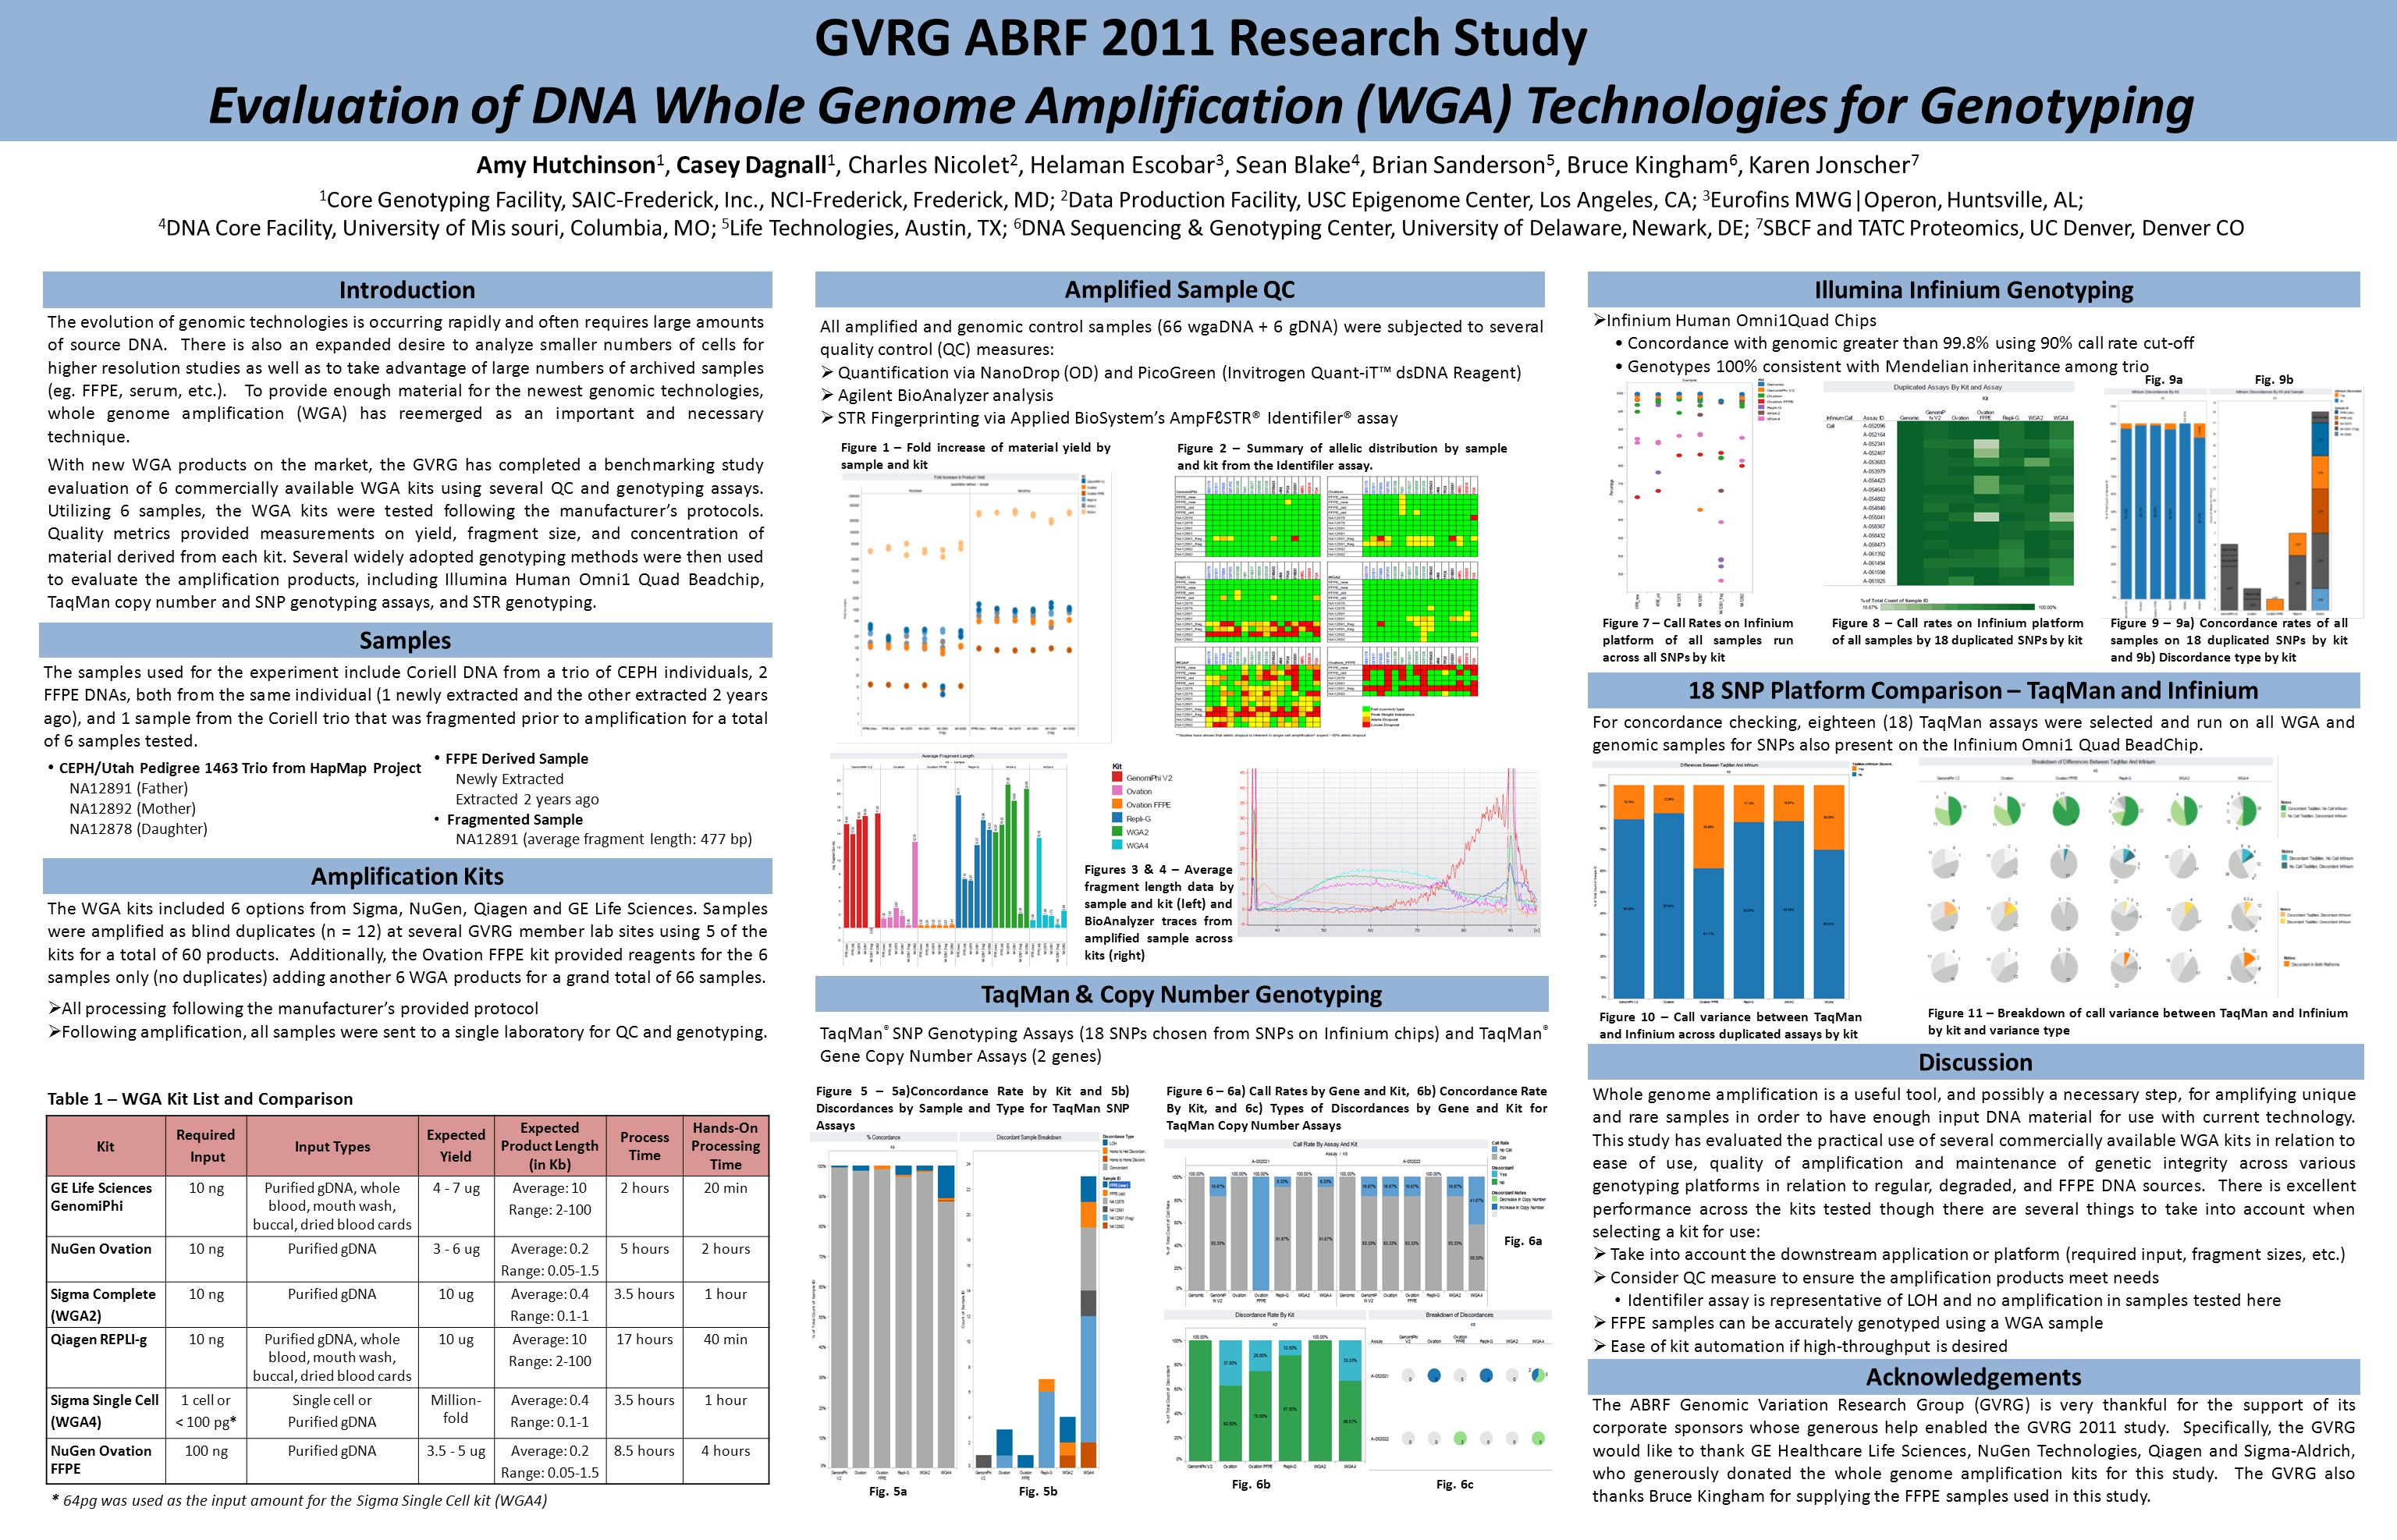 GVRG ABRF 2011 Research Study Evaluation of DNA Whole Genome Amplification (WGA) Technologies for Genotyping The evolution of genomic technologies is occurring rapidly and often requires large amounts of source DNA.